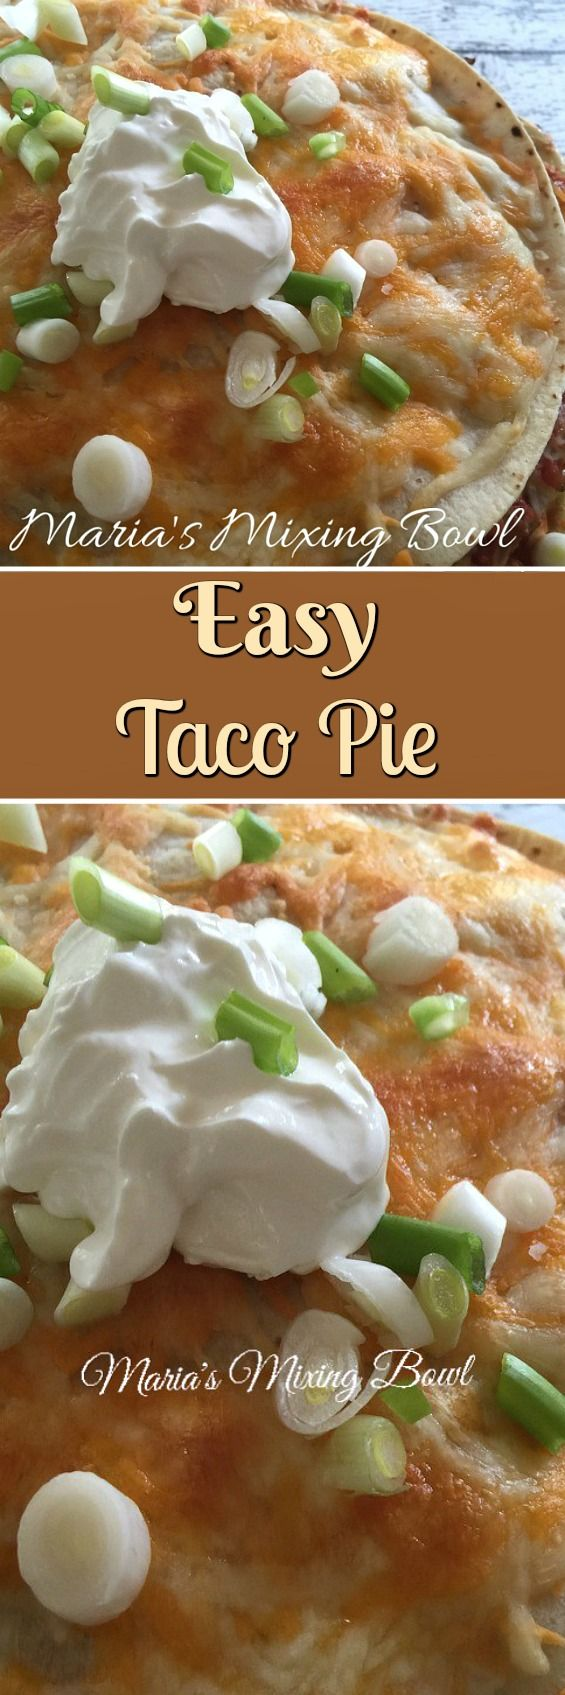 Easy Taco Pie - Love tacos? Then you will love this quick and easy Taco Pie!! Here is everything you love in a taco all in one easy pie! #easy #taco #pie #quick #weeknightfavorite #